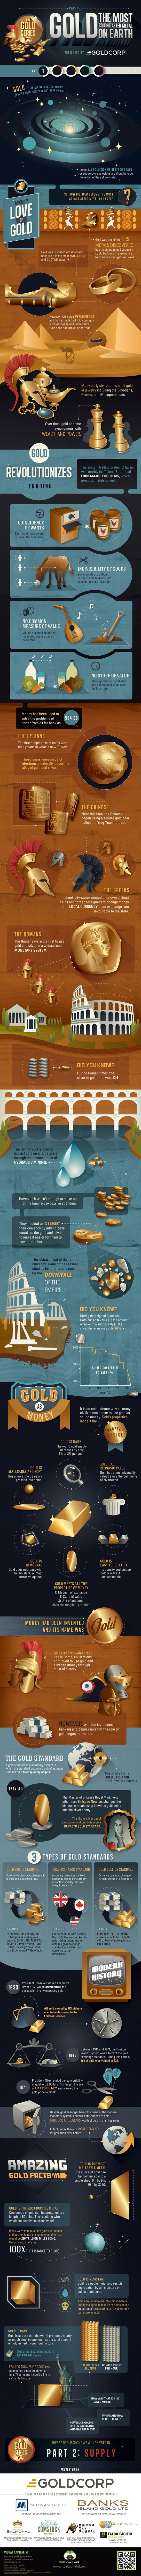 gold-series-part-1-infographic